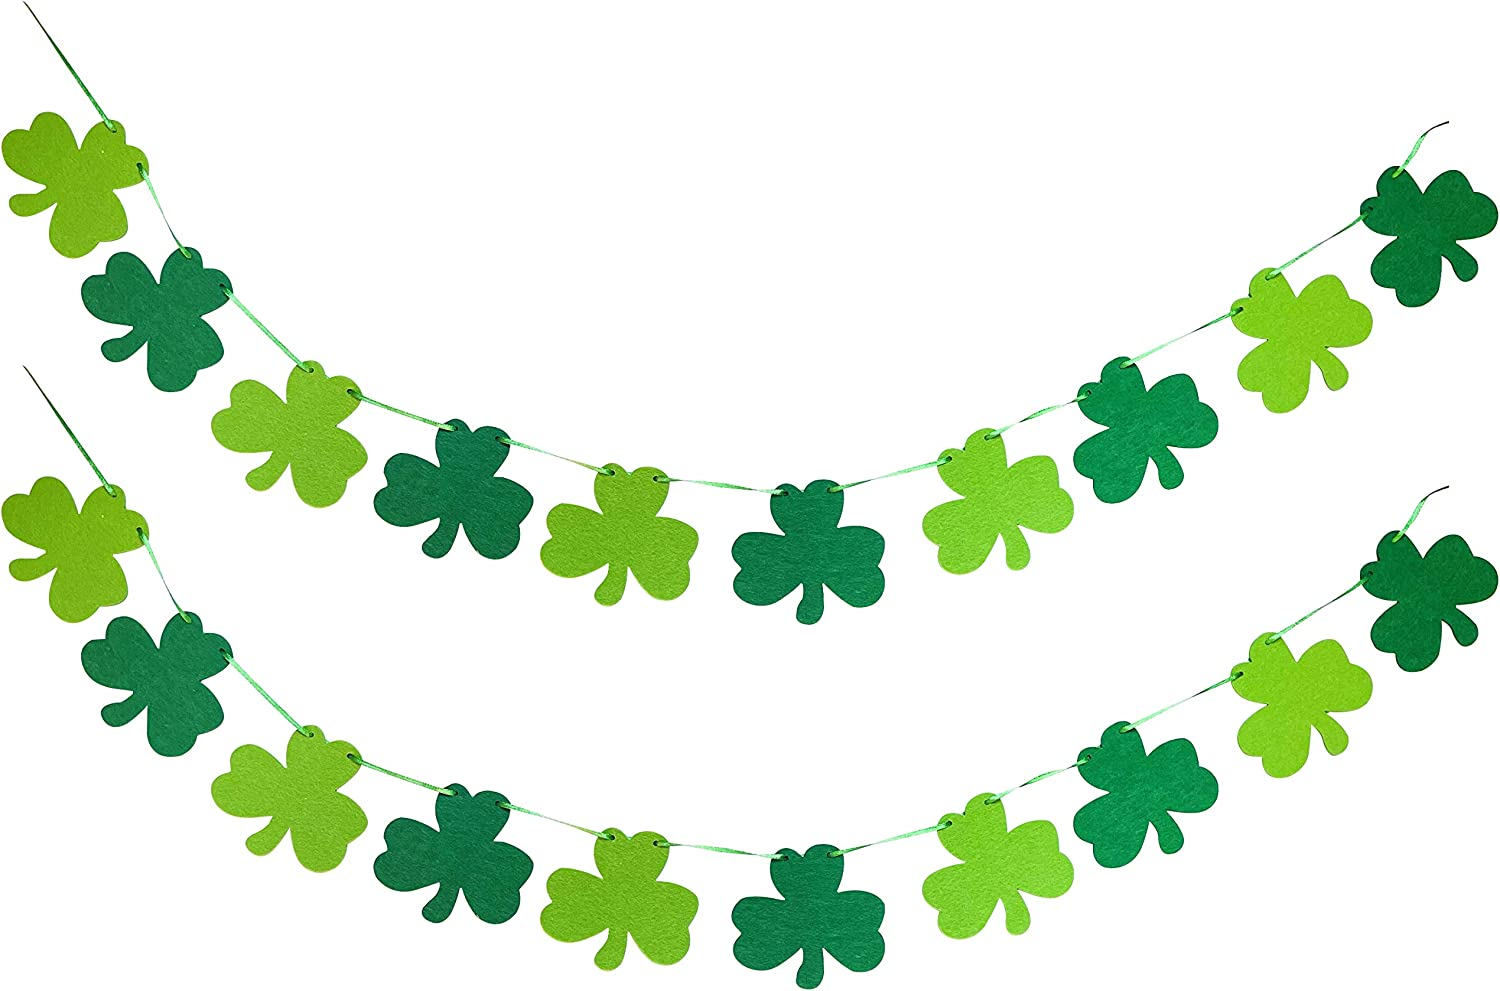 St. Patrick's Day Decorations Felt Shamrock Clover Garland Banner for St.Patrick's Day Lucky Shamrock Banner Garland for Irish Party Supplies Decor